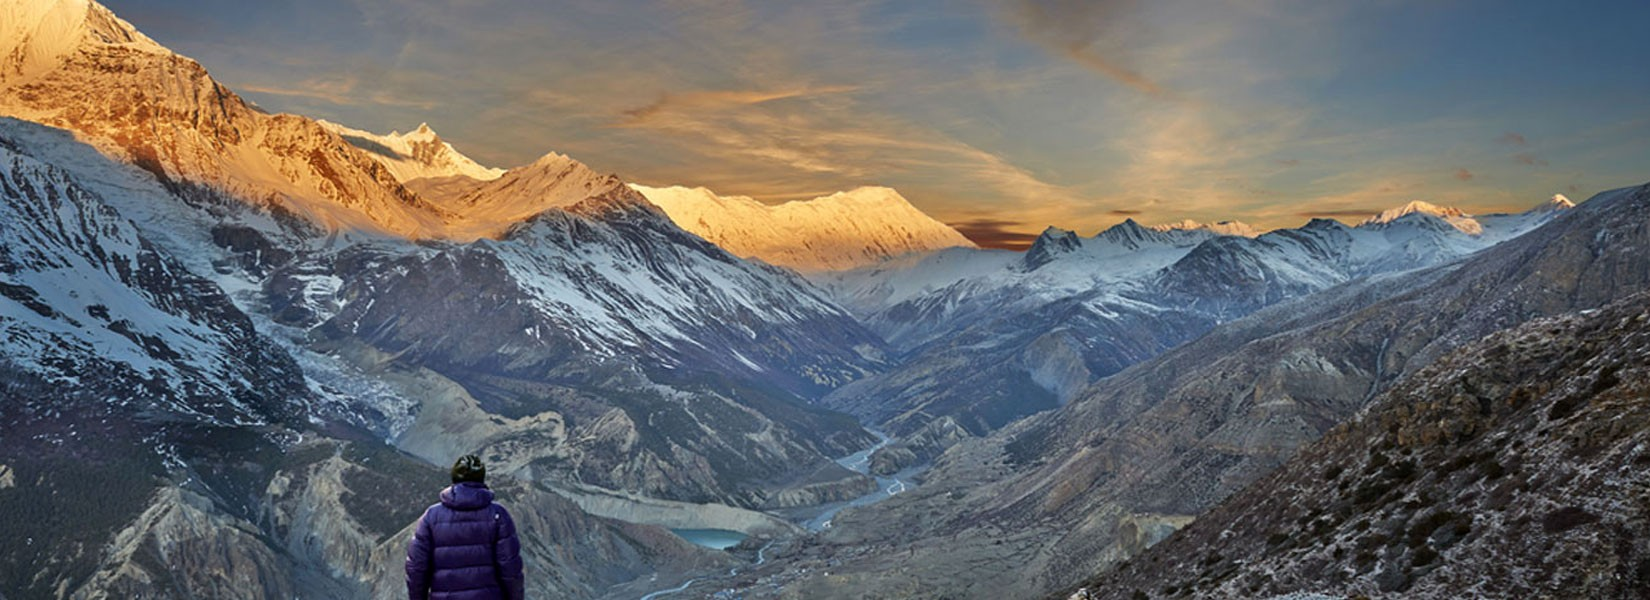 Stunning sunset on Annapurna Range, view from Manang